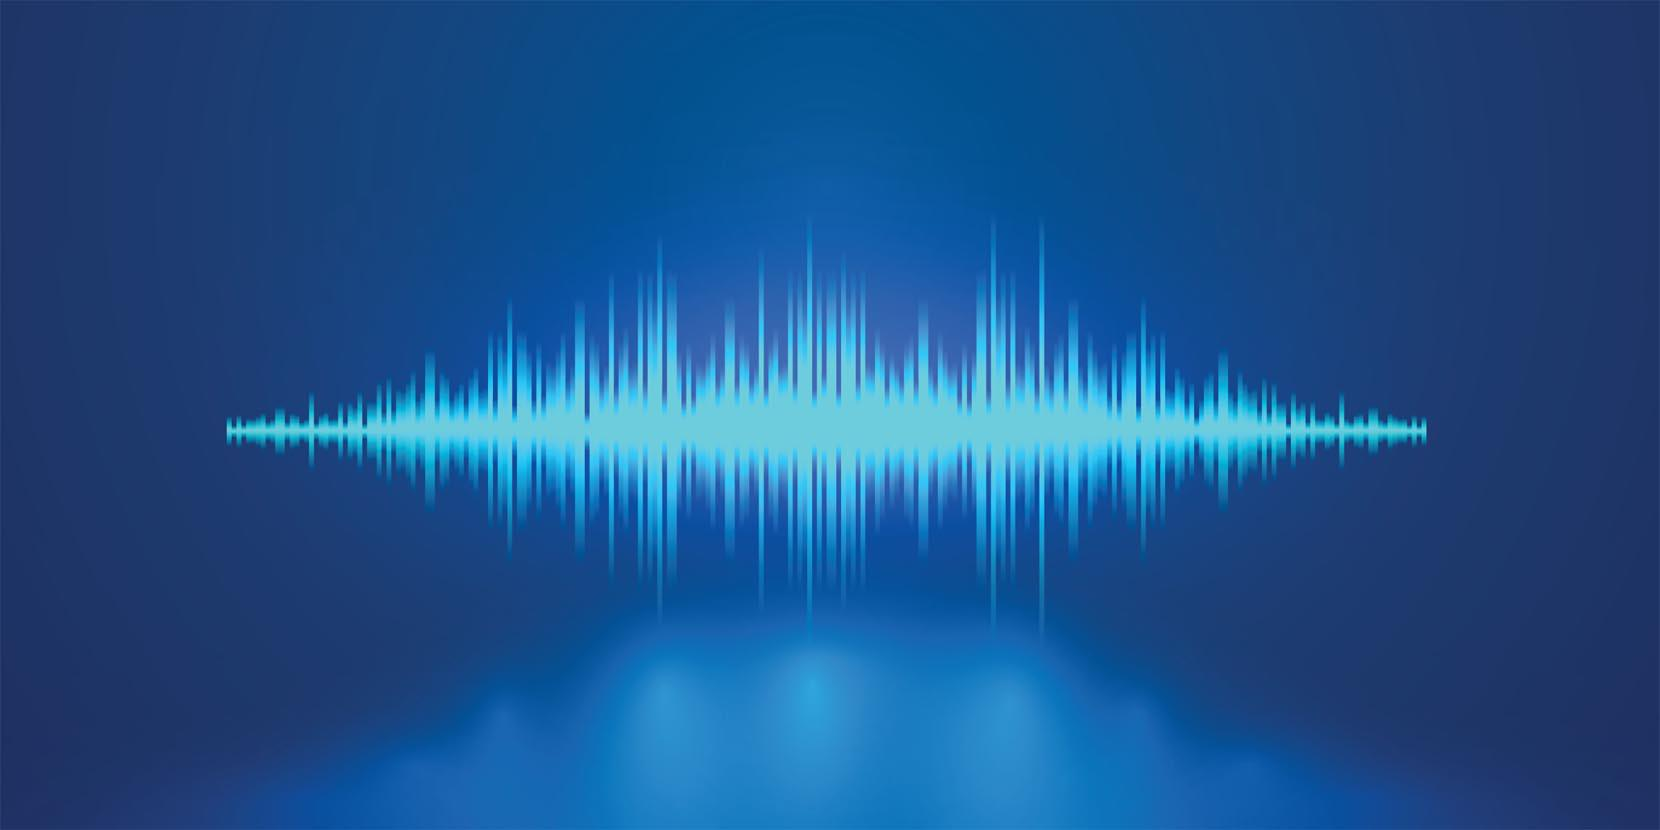 Artificial intelligence-driven voice forensics can yield a great deal of information about a speaker, including physical characteristics, health, genealogy and environment. Credit: Shutterstock